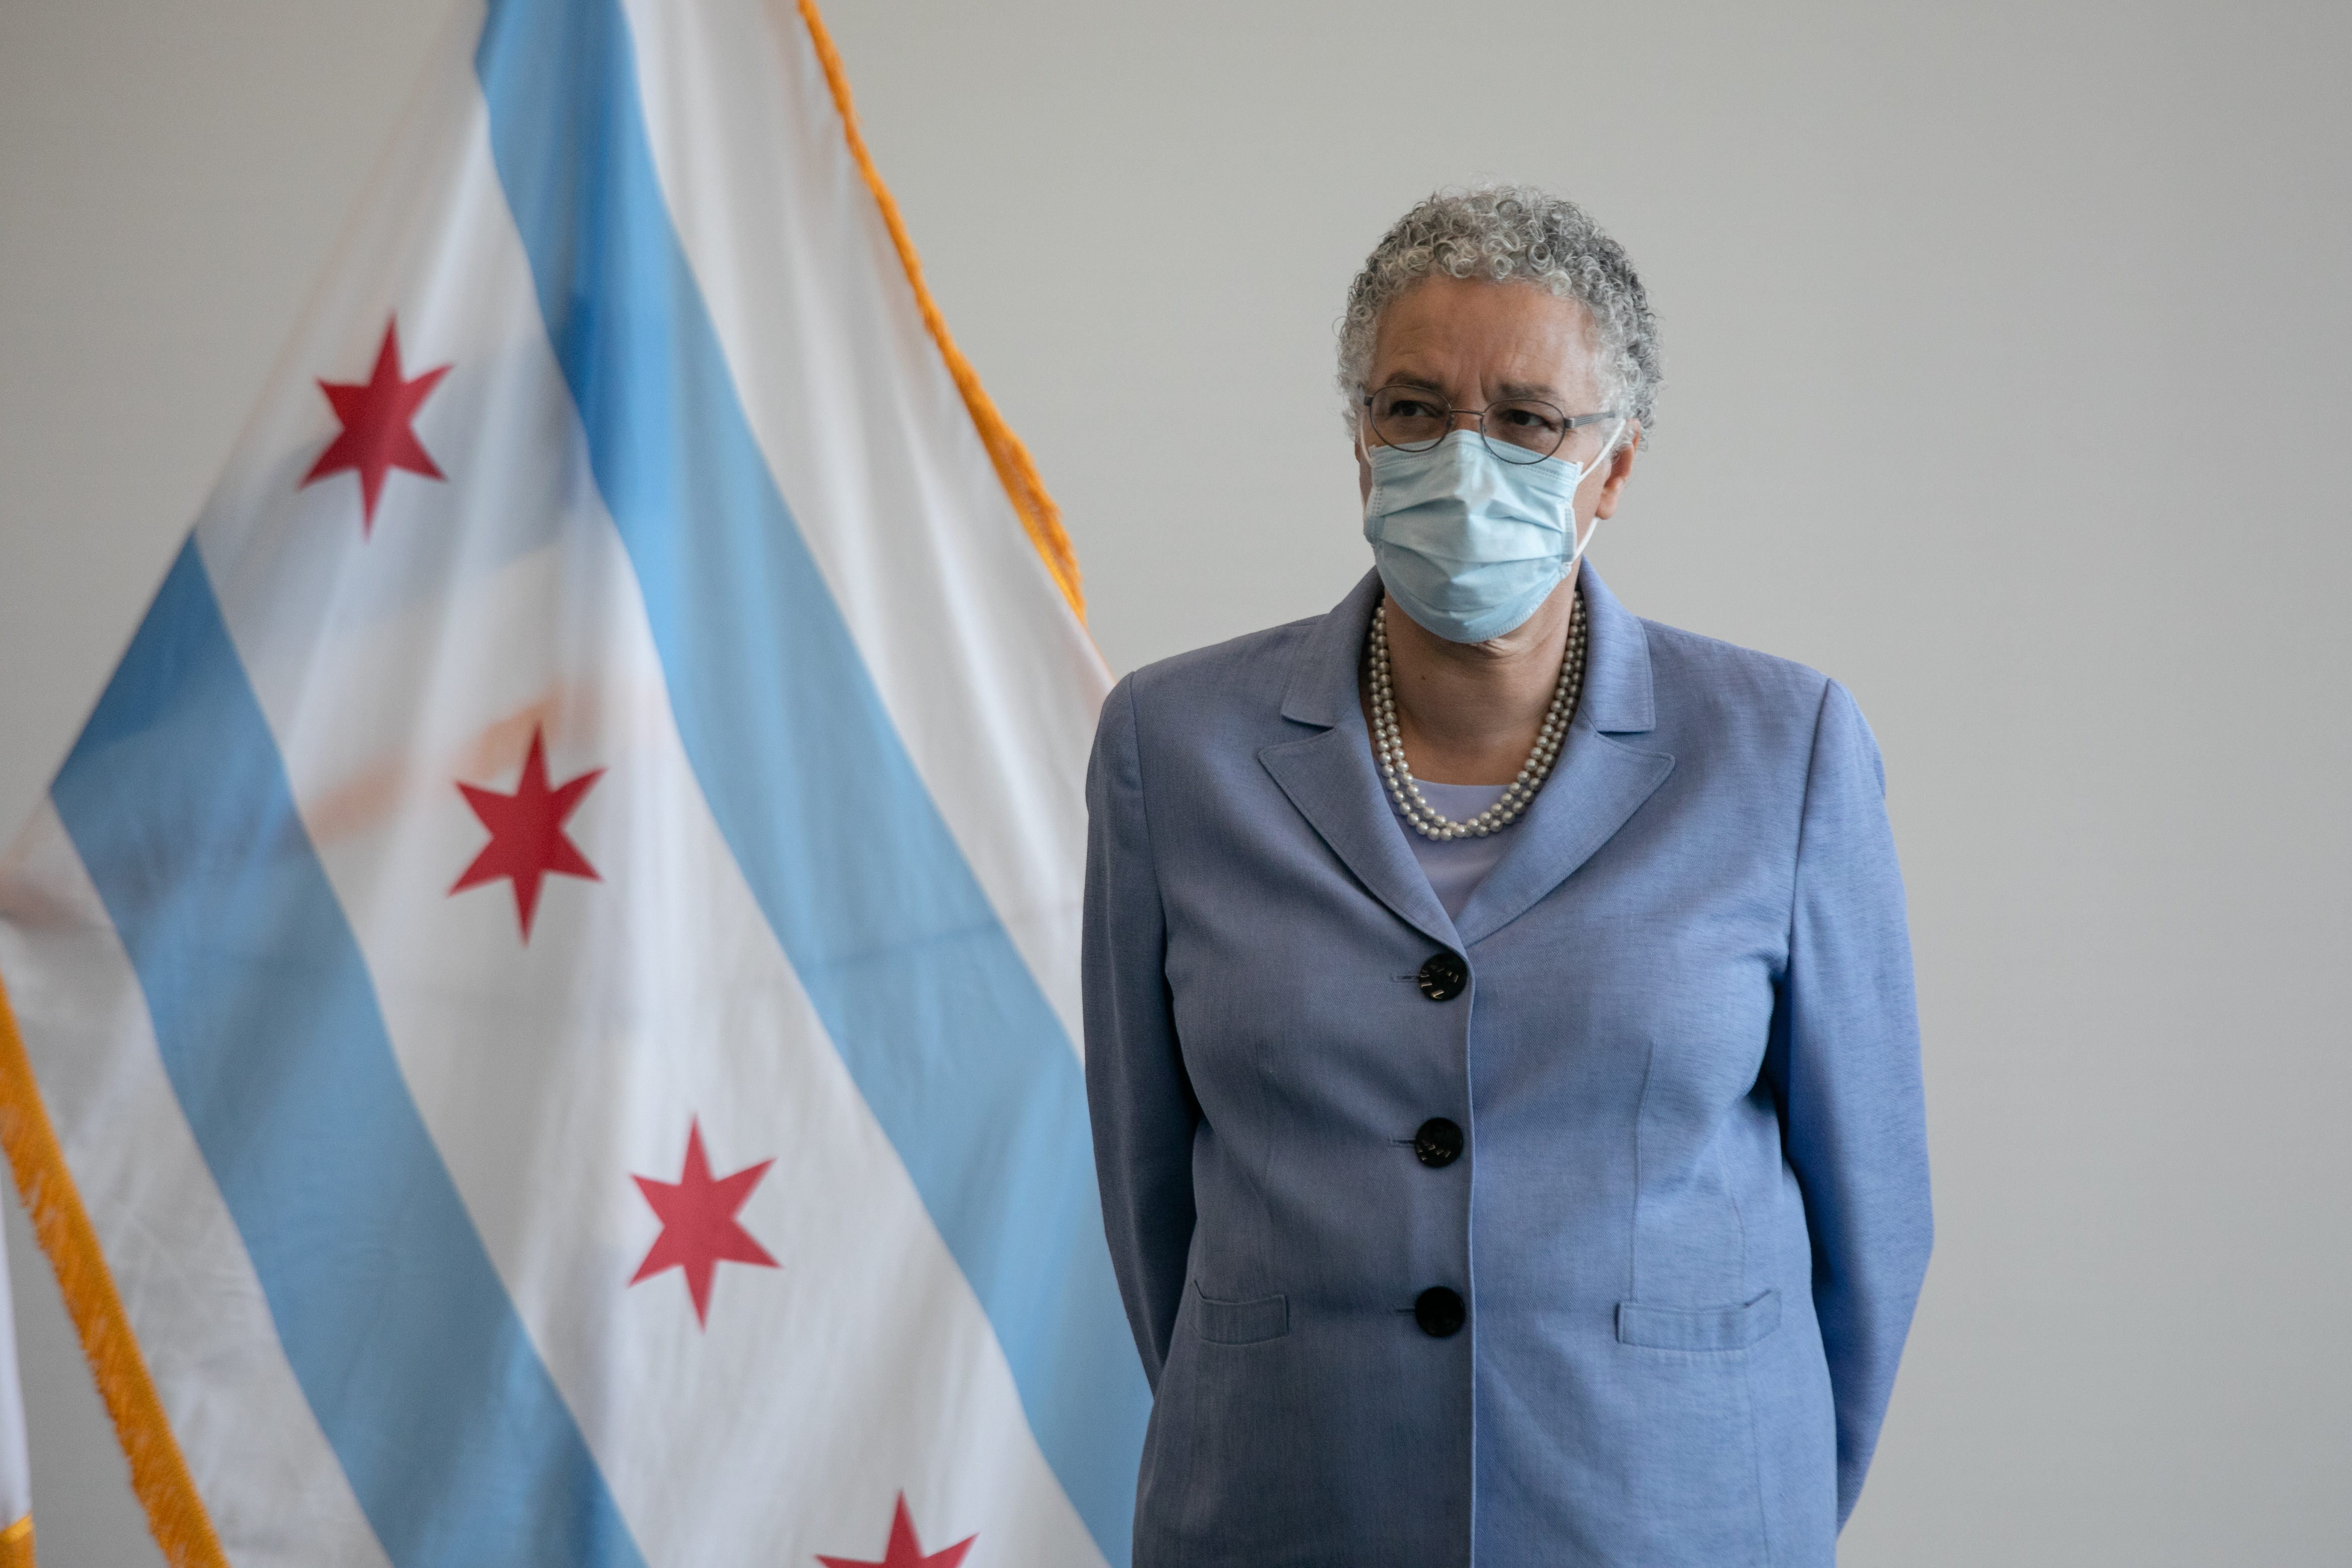 Cook County Board President Toni Preckwinkle attends a news conference at Cook County Health's Professional Building in July.